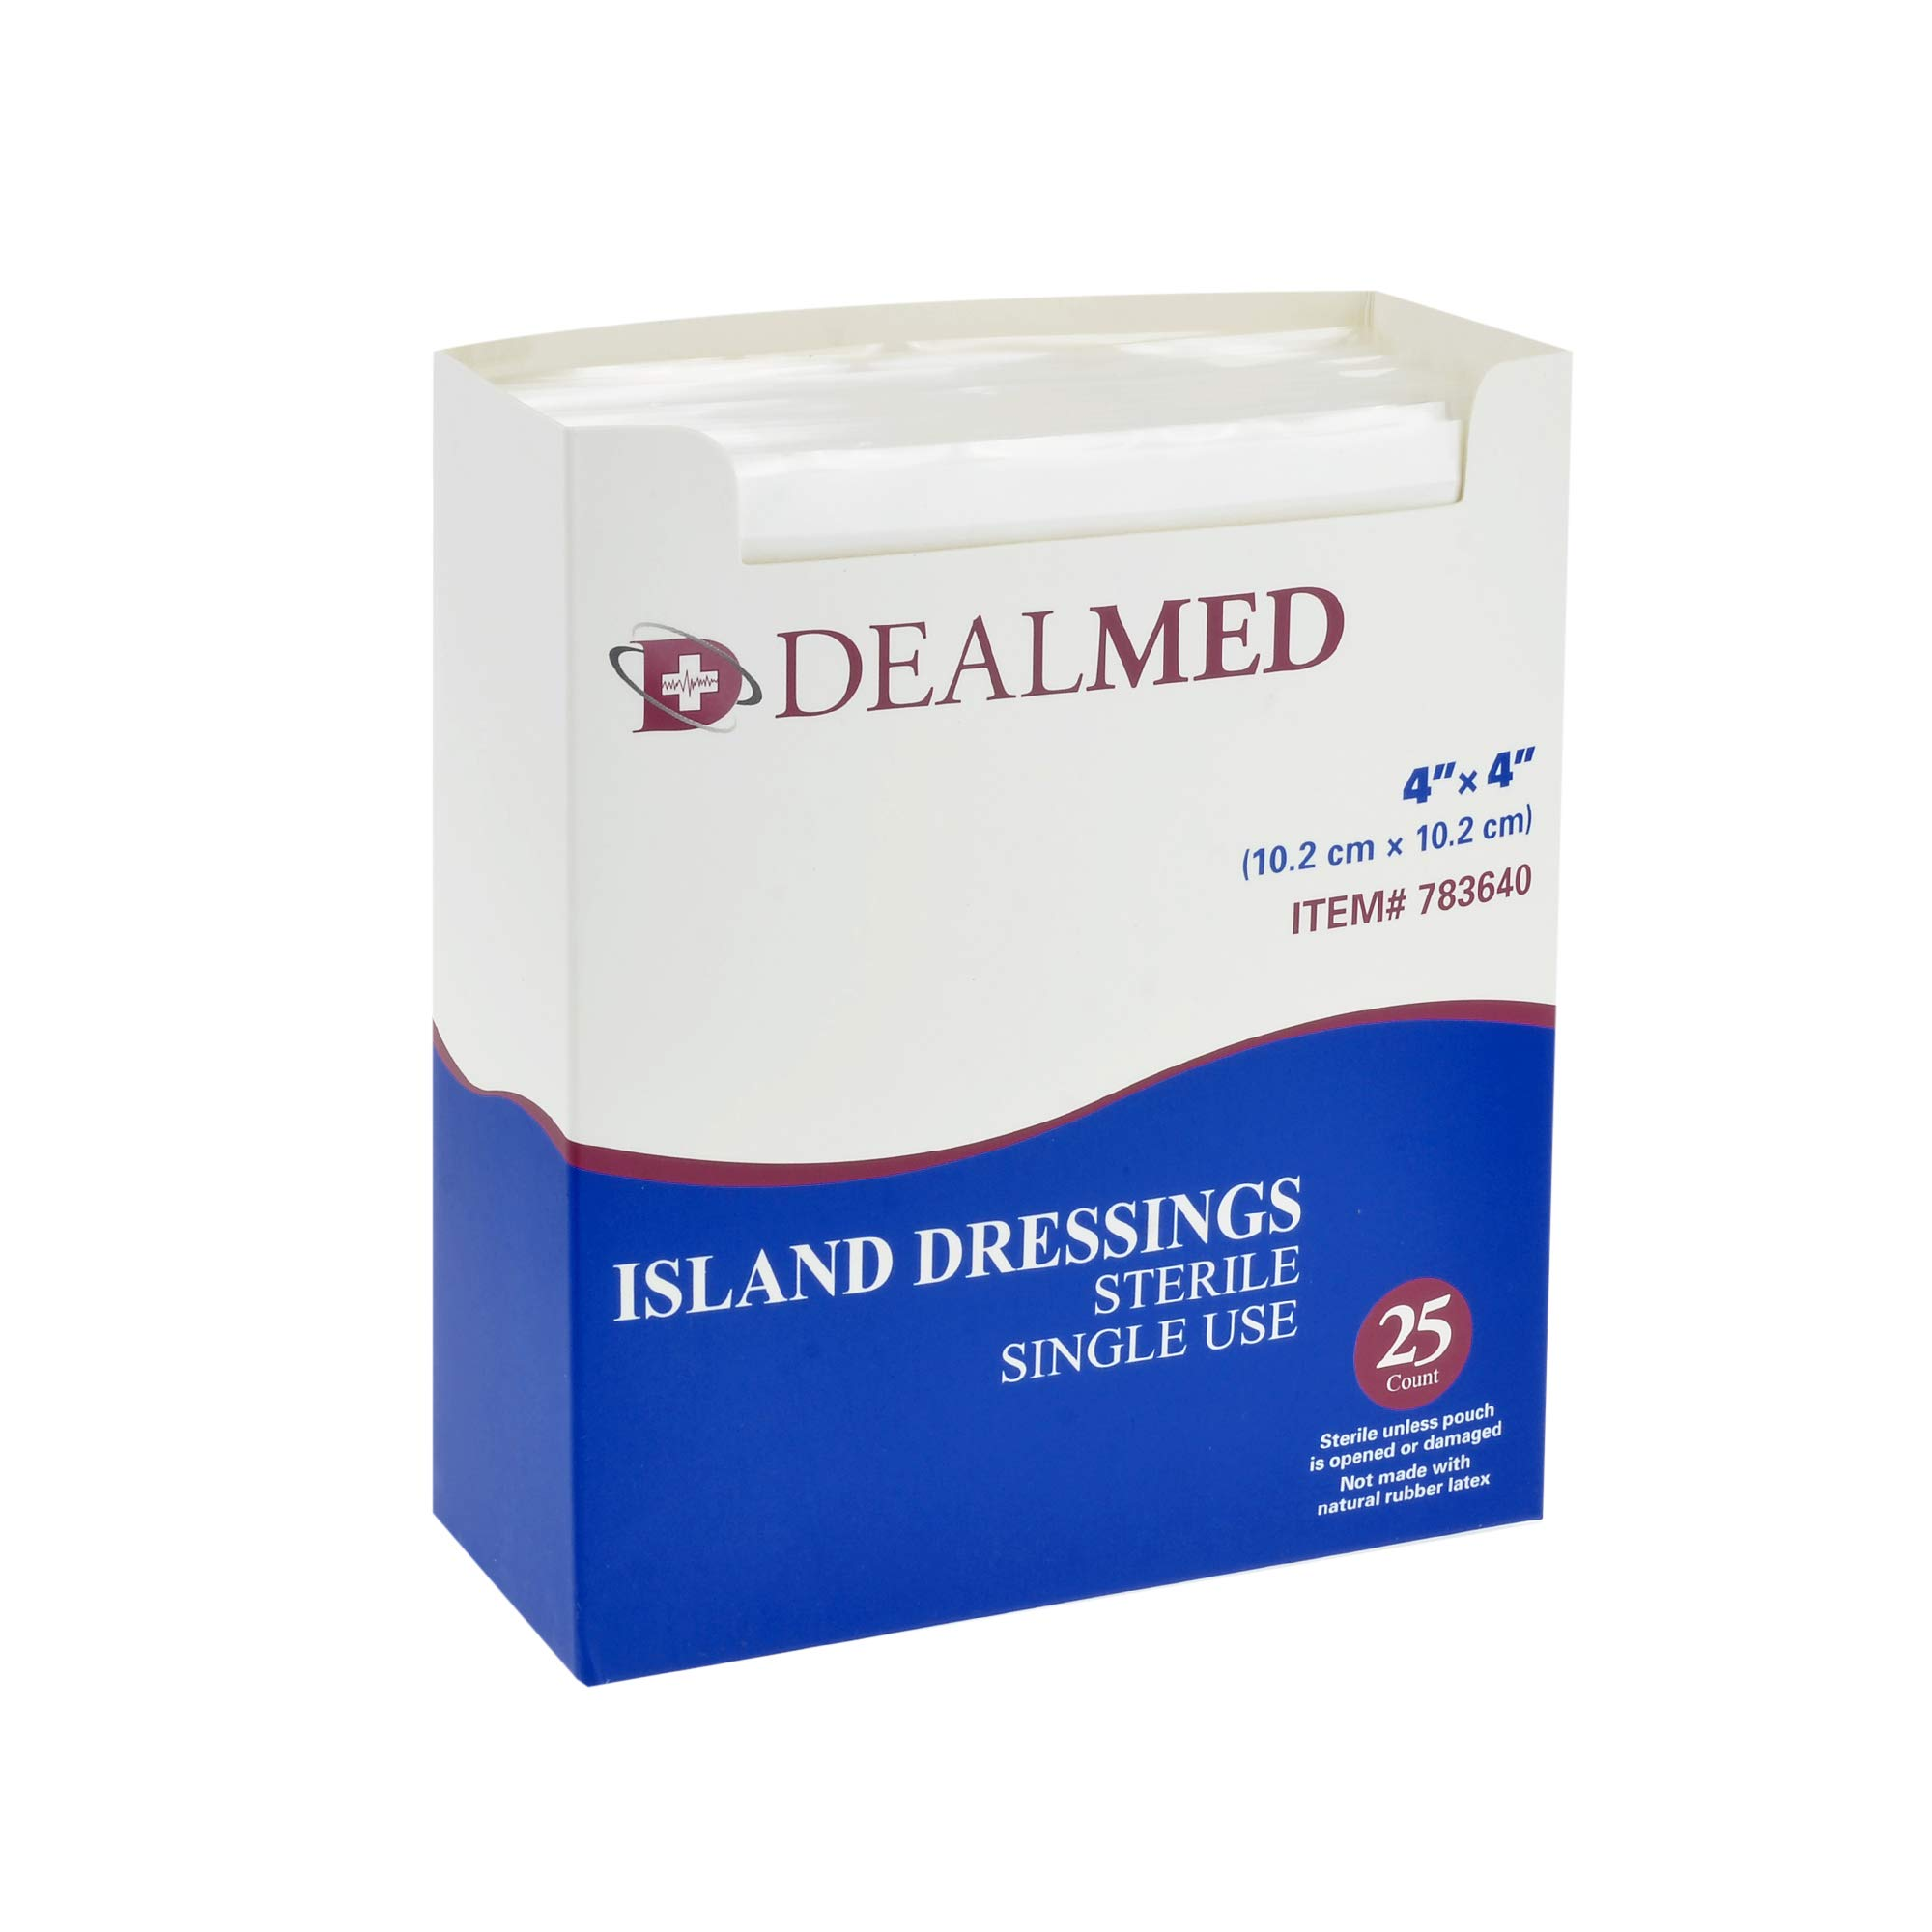 Dealmed Sterile Bordered Gauze Island Dressings, Non-Stick, Latex-Free, 4'' x 4'', 25 count